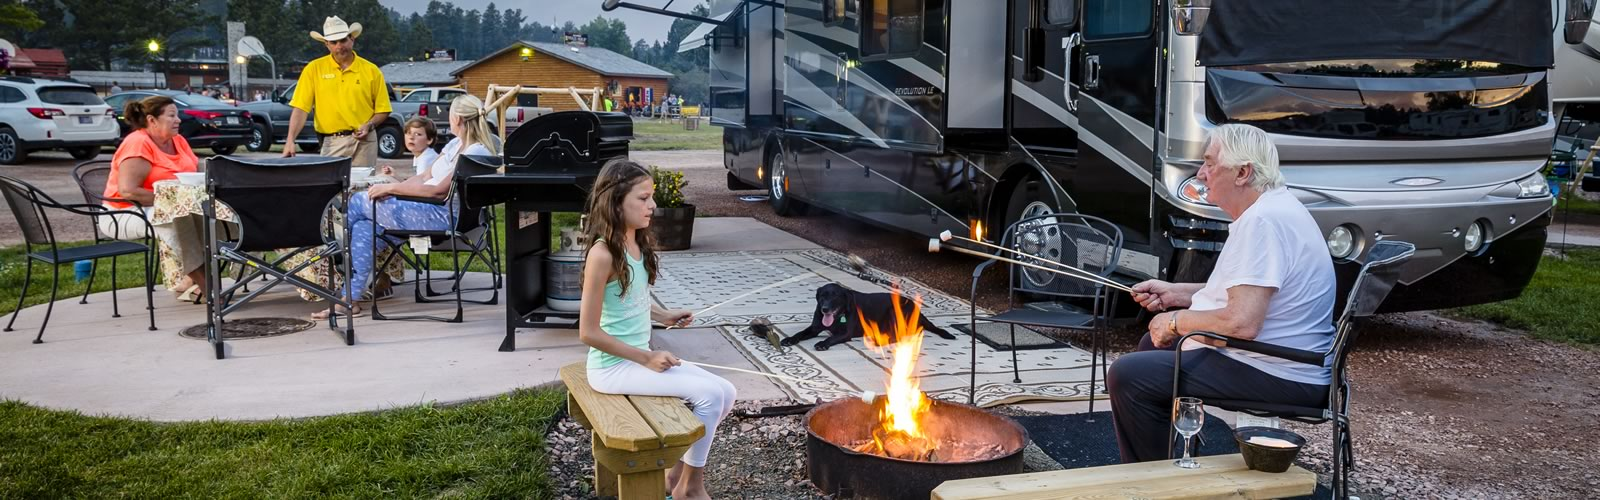 Reserving an RV Site - With over 60000 at our campgrounds youre sure to find an RV spot perfect for your upcoming getaway reservations are easy